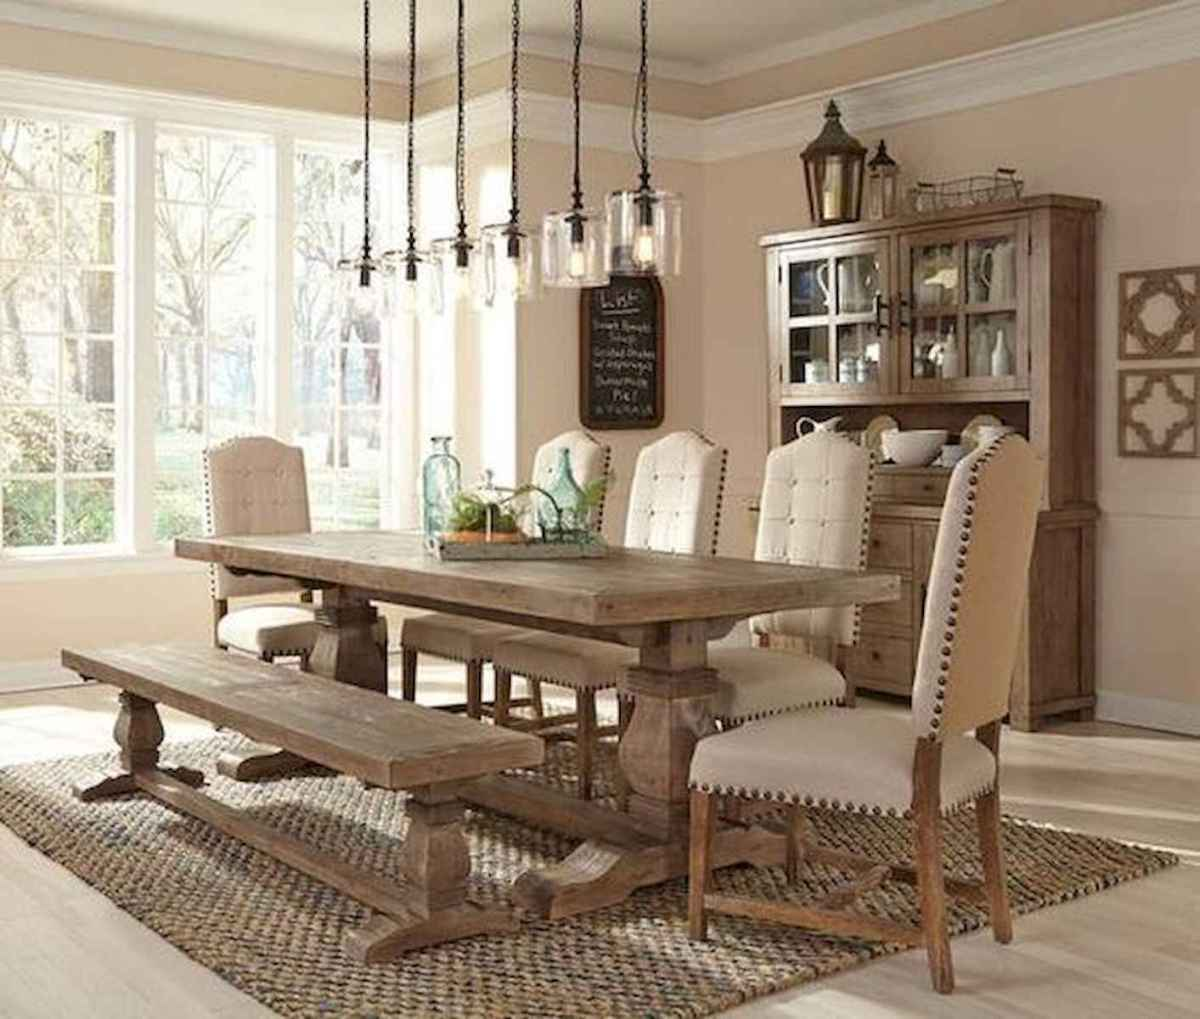 55 Stunning DIY Projects Furniture Tables Dining Rooms Design Ideas (40)